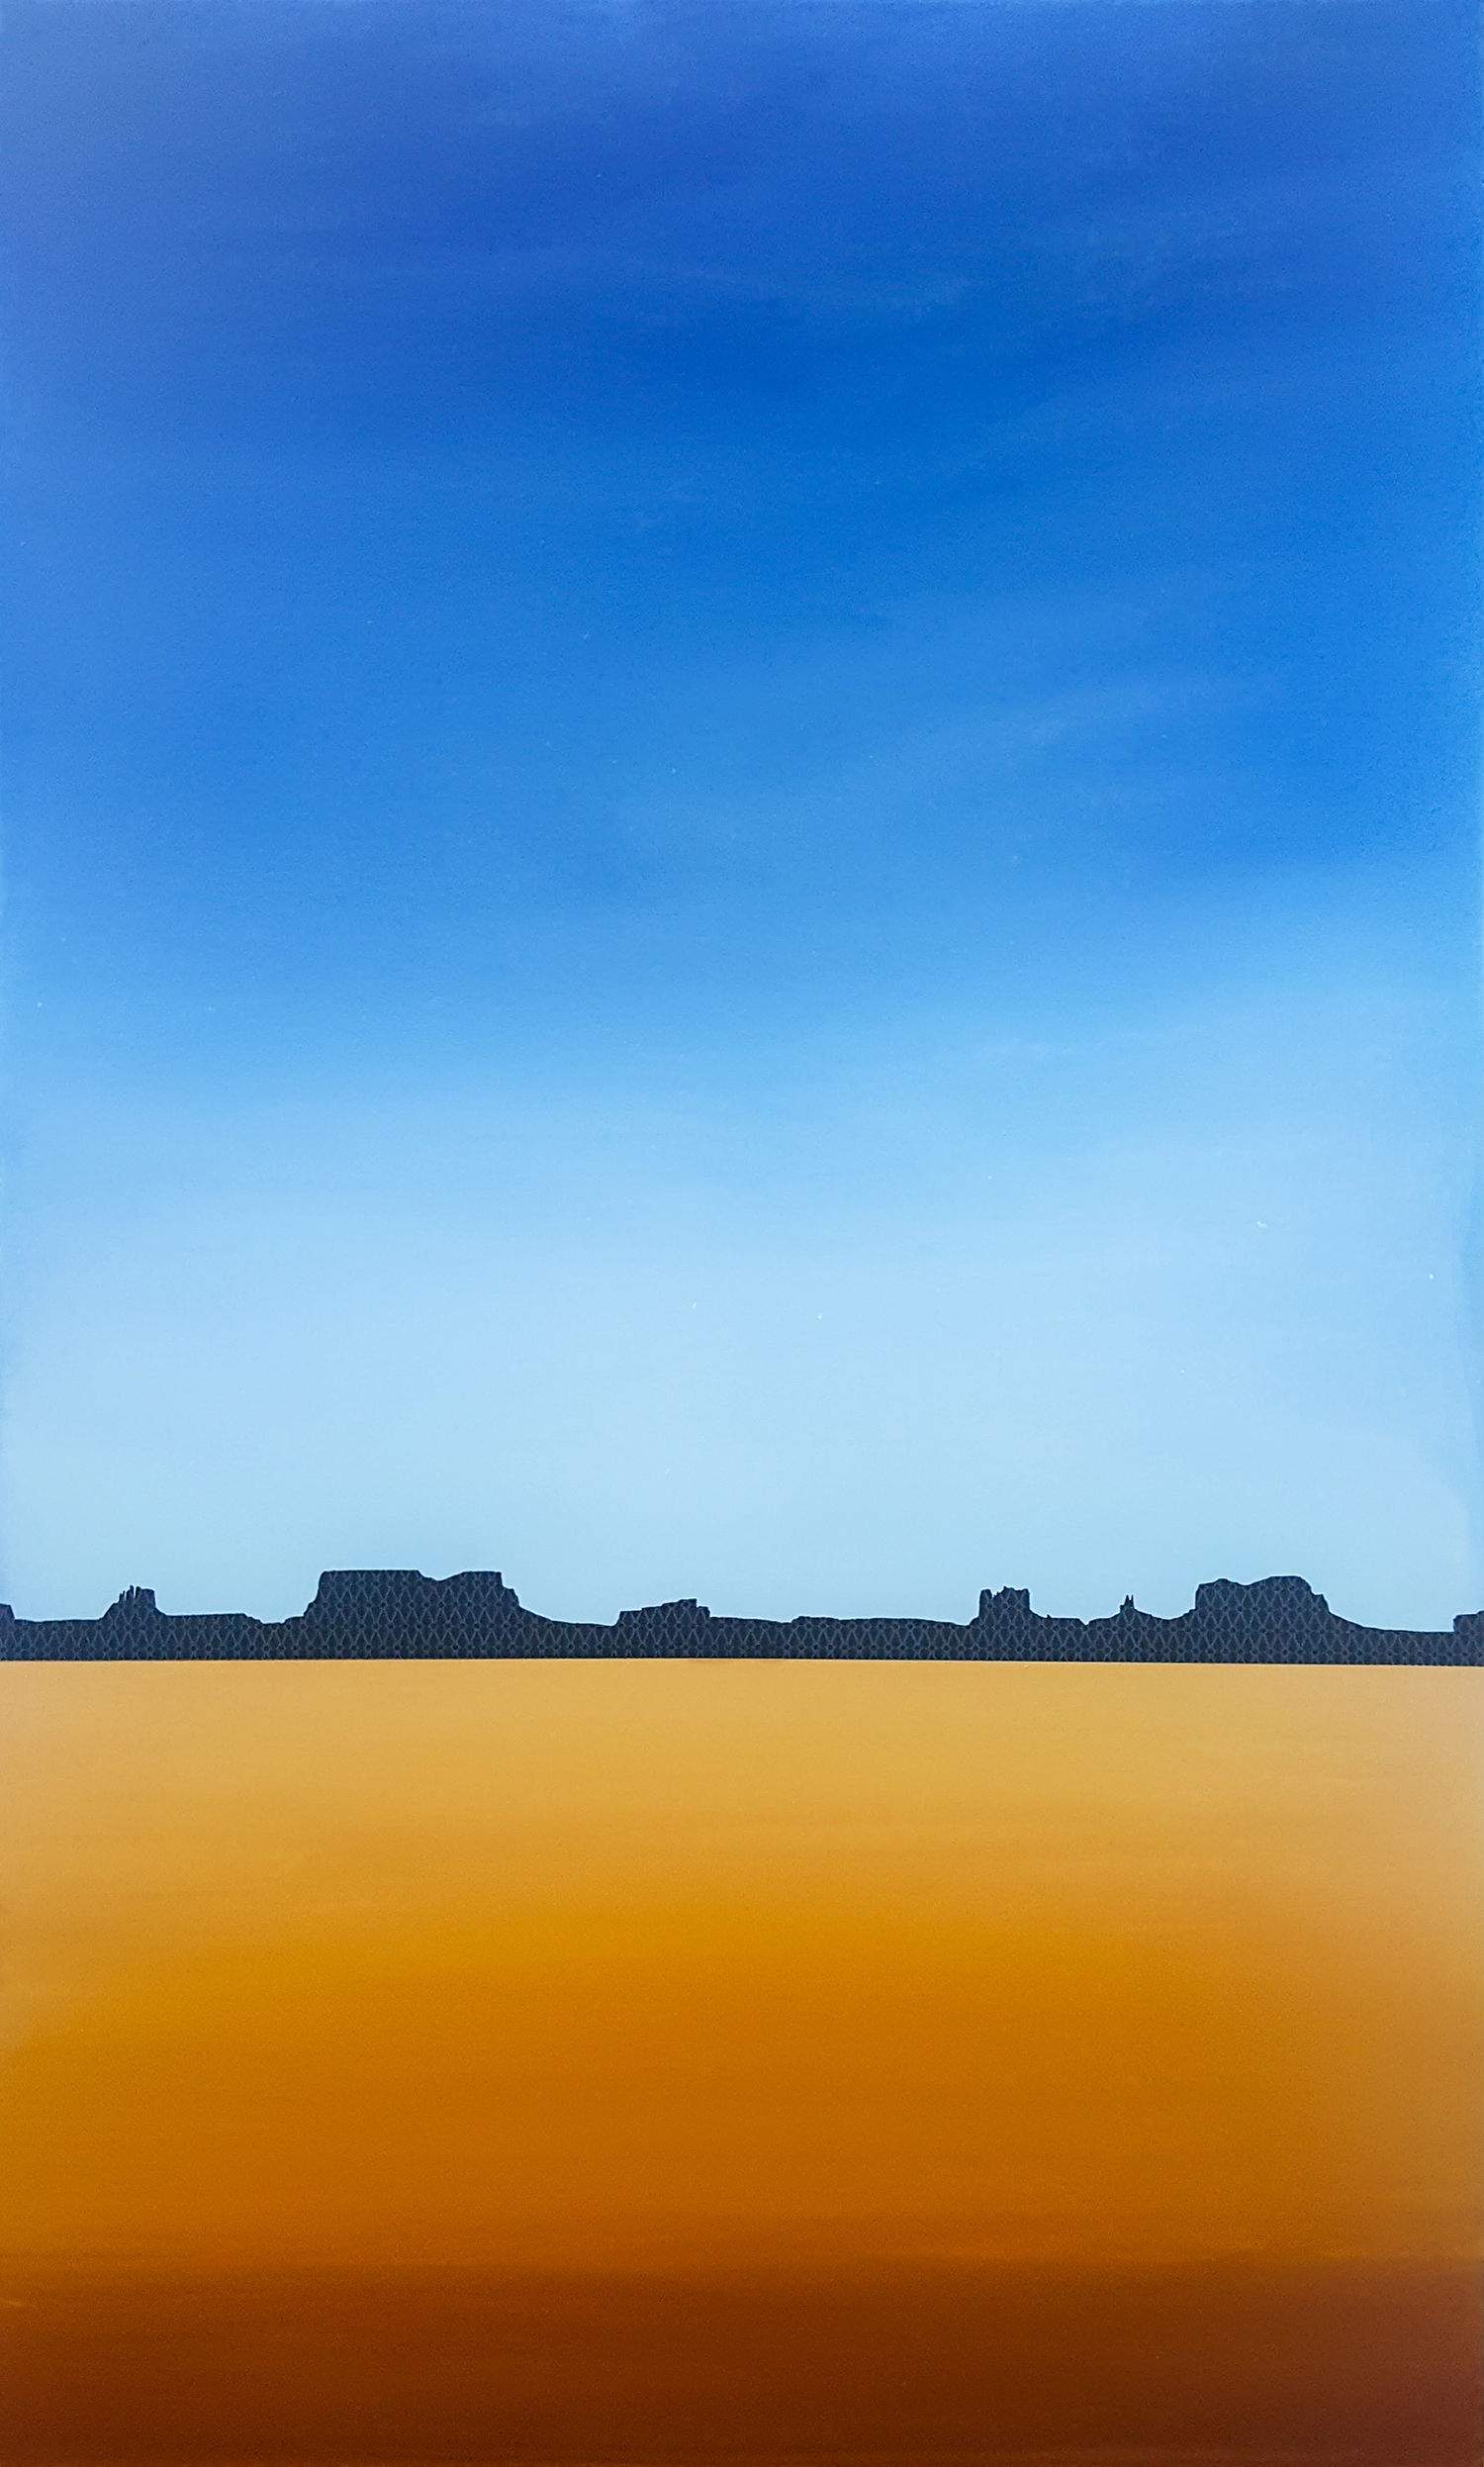 Desert Silhouette with Plateau, 2017. Acrylic and screenprint on panel. 36 x 60 x 2 in.